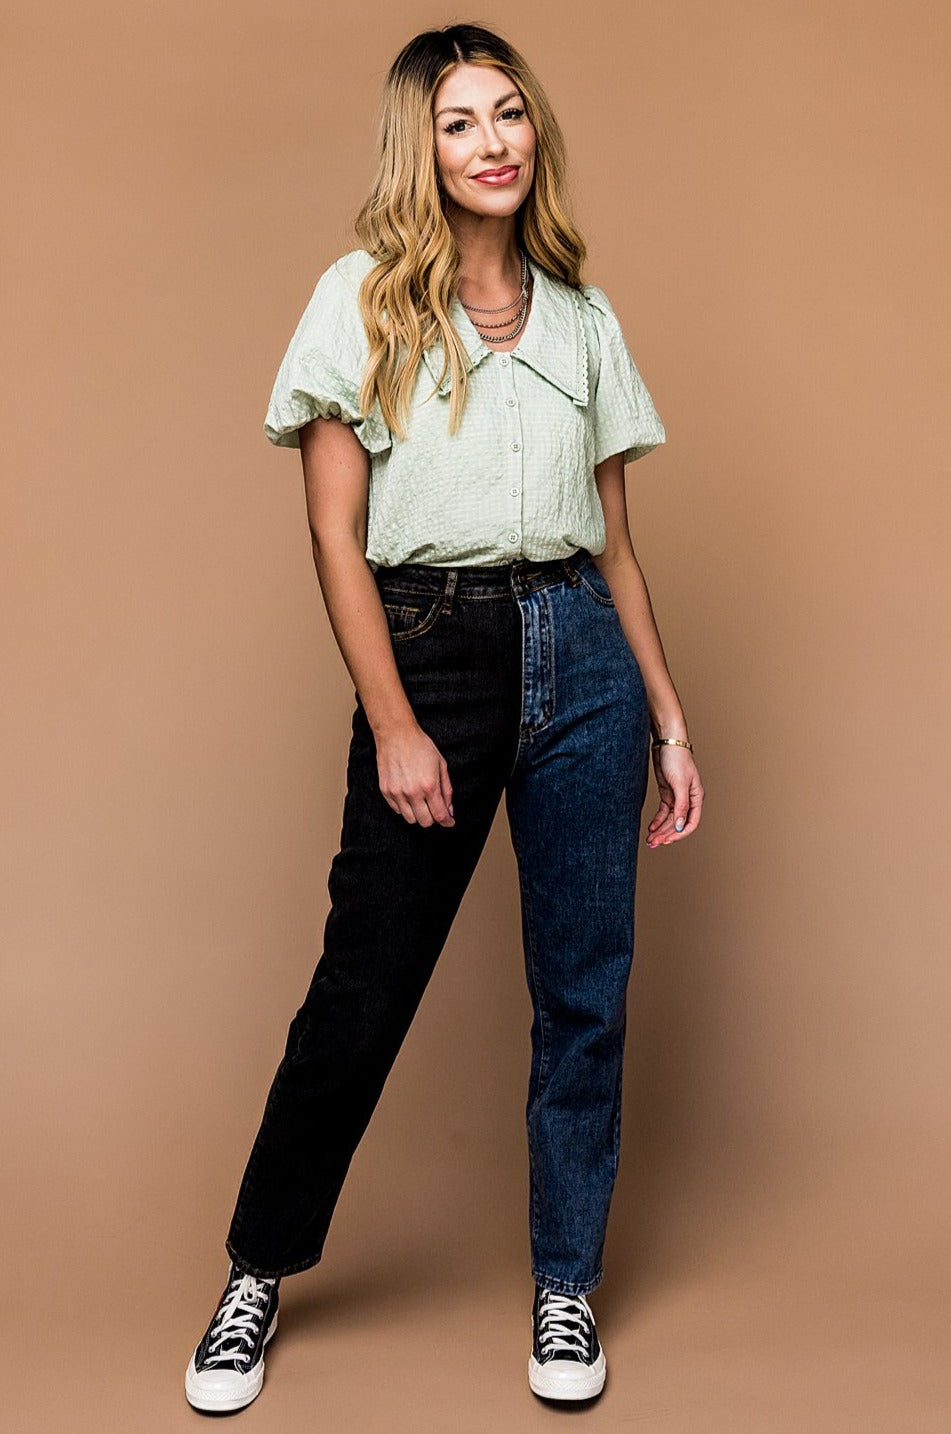 Best Girl Half and Half Mom Jeans